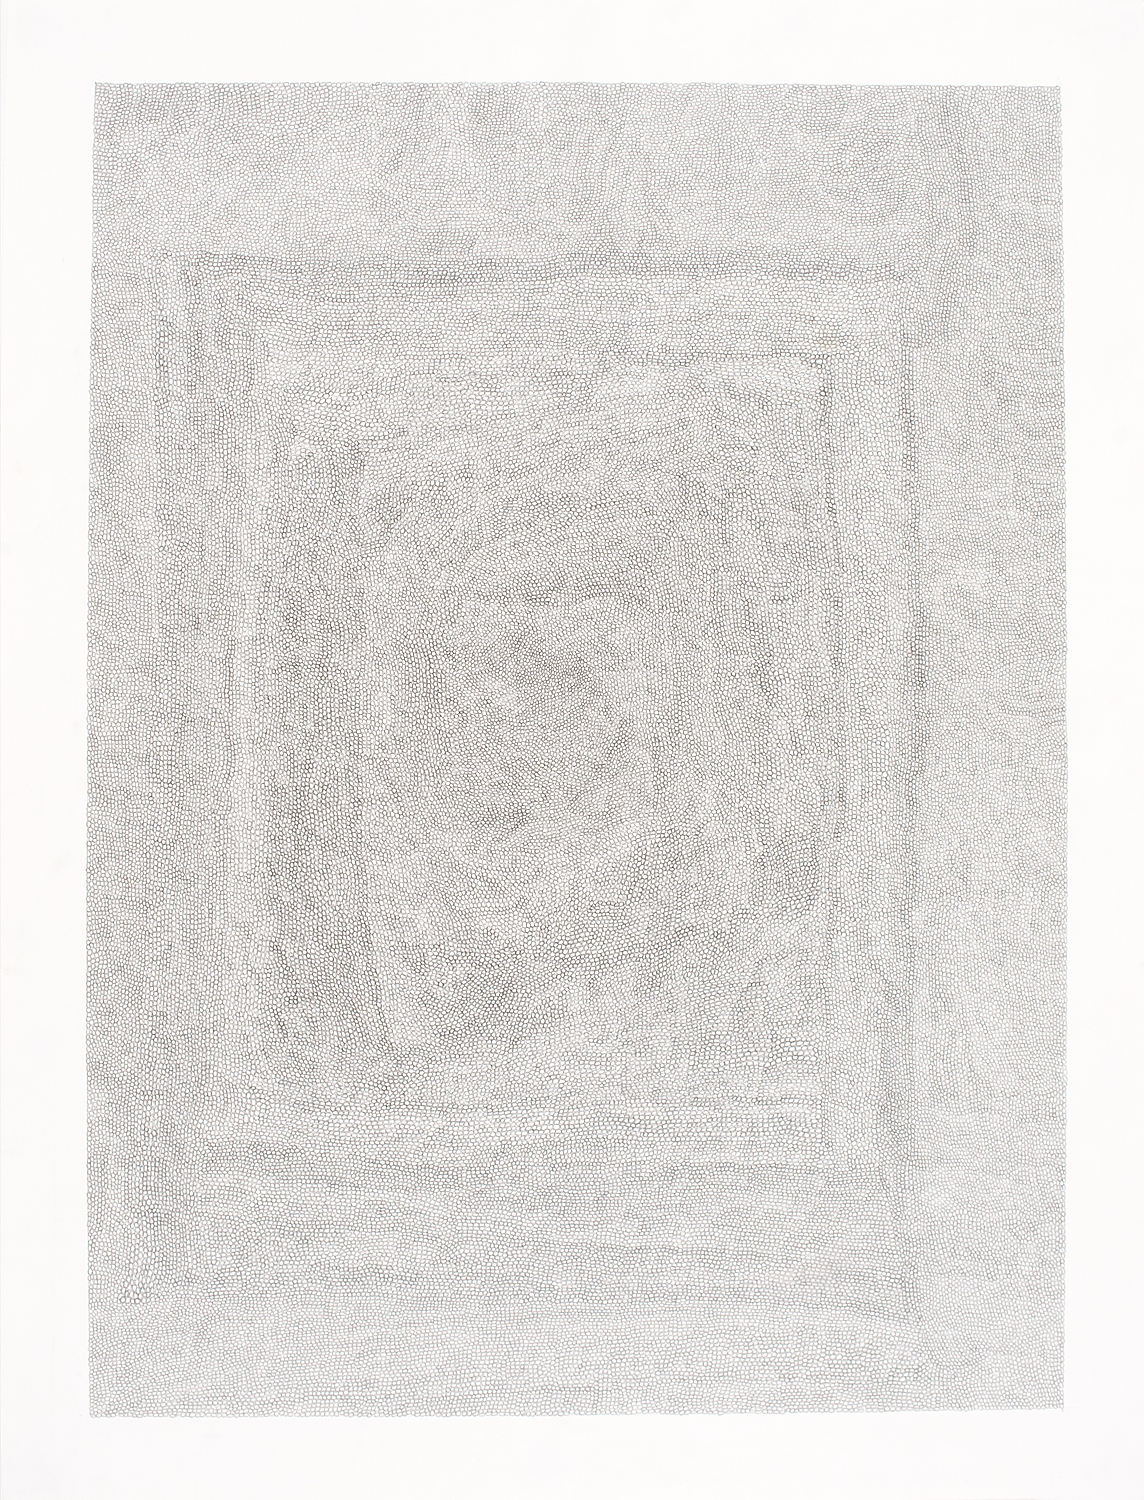 Circle Within Large Rectangle,2007 50 by 38 inches Graphite on paper